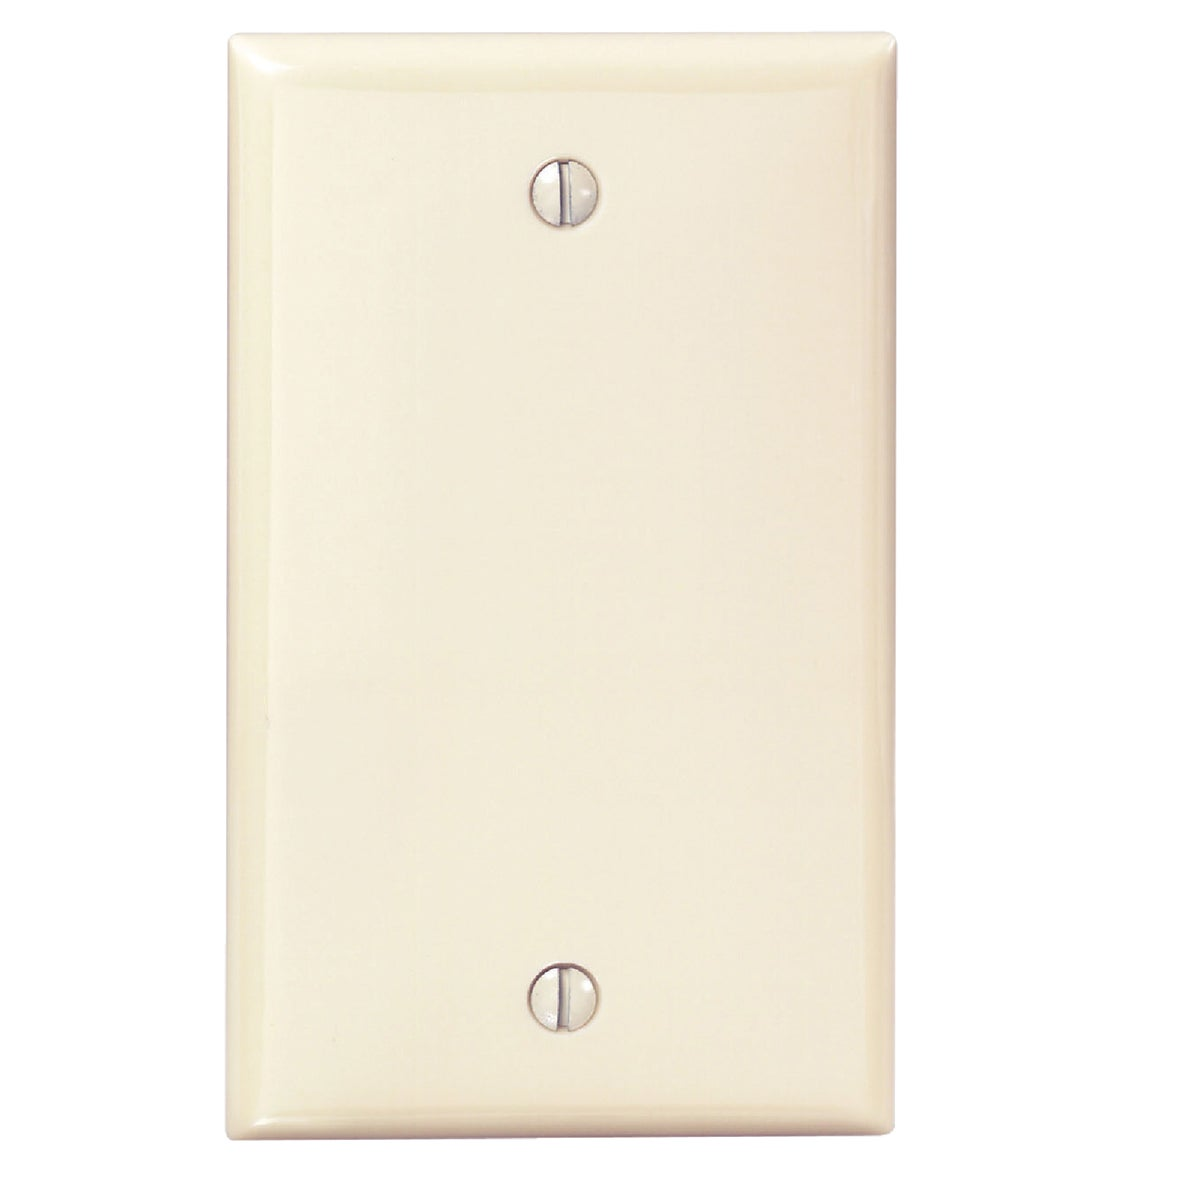 IV BLANK WALL PLATE - 80714I by Leviton Mfg Co